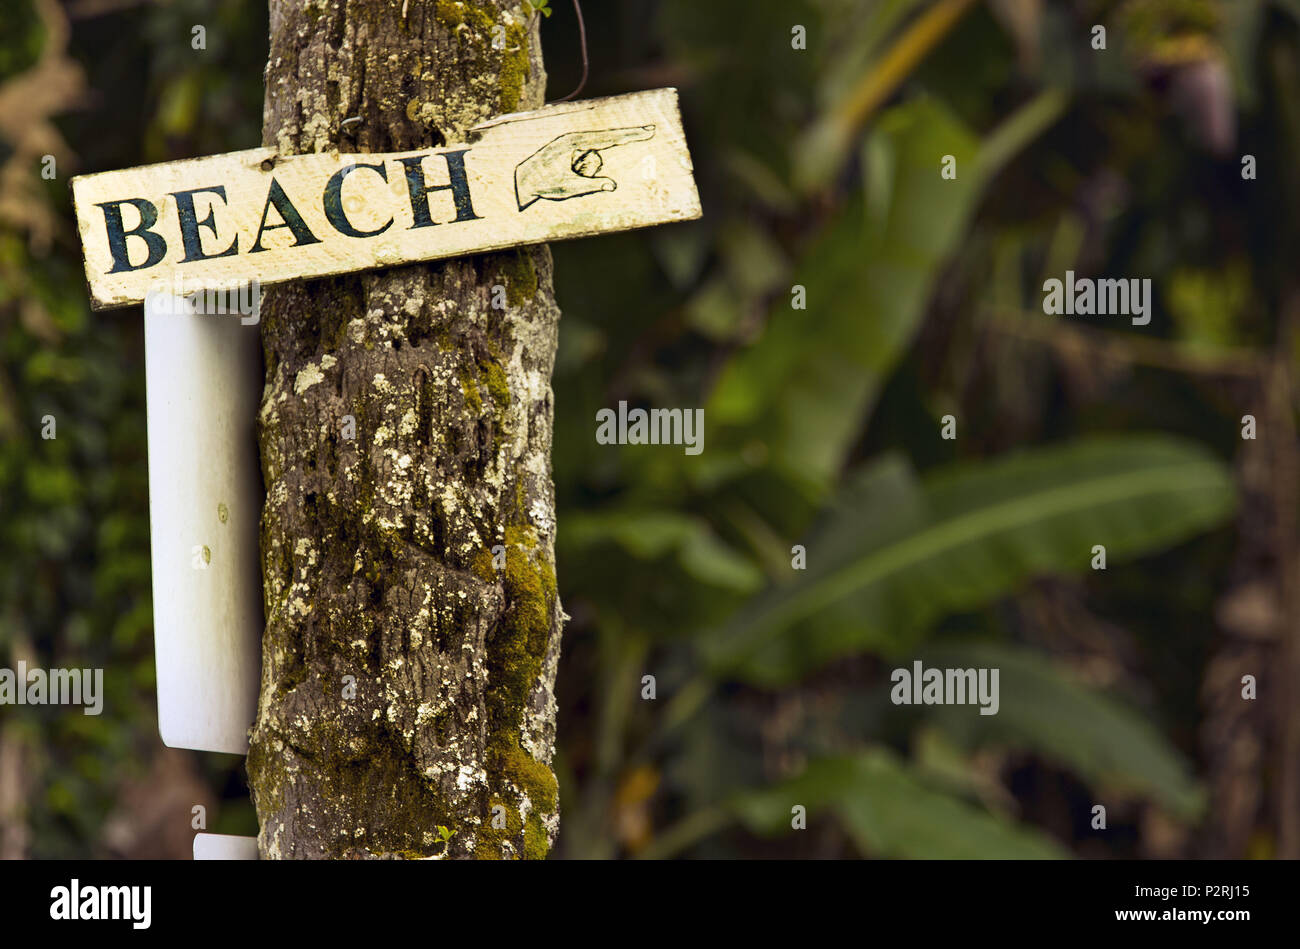 Pahoa, Hawaii, USA. 6th June, 2018. A sign points to the beach as all is well in Hilo while the Kilauea Volcano lower east rift zone continues the eruption on Wednesday, June 6, 2018, in Pahoa, Hawaii. Credit: L.E. Baskow/ZUMA Wire/Alamy Live News Stock Photo